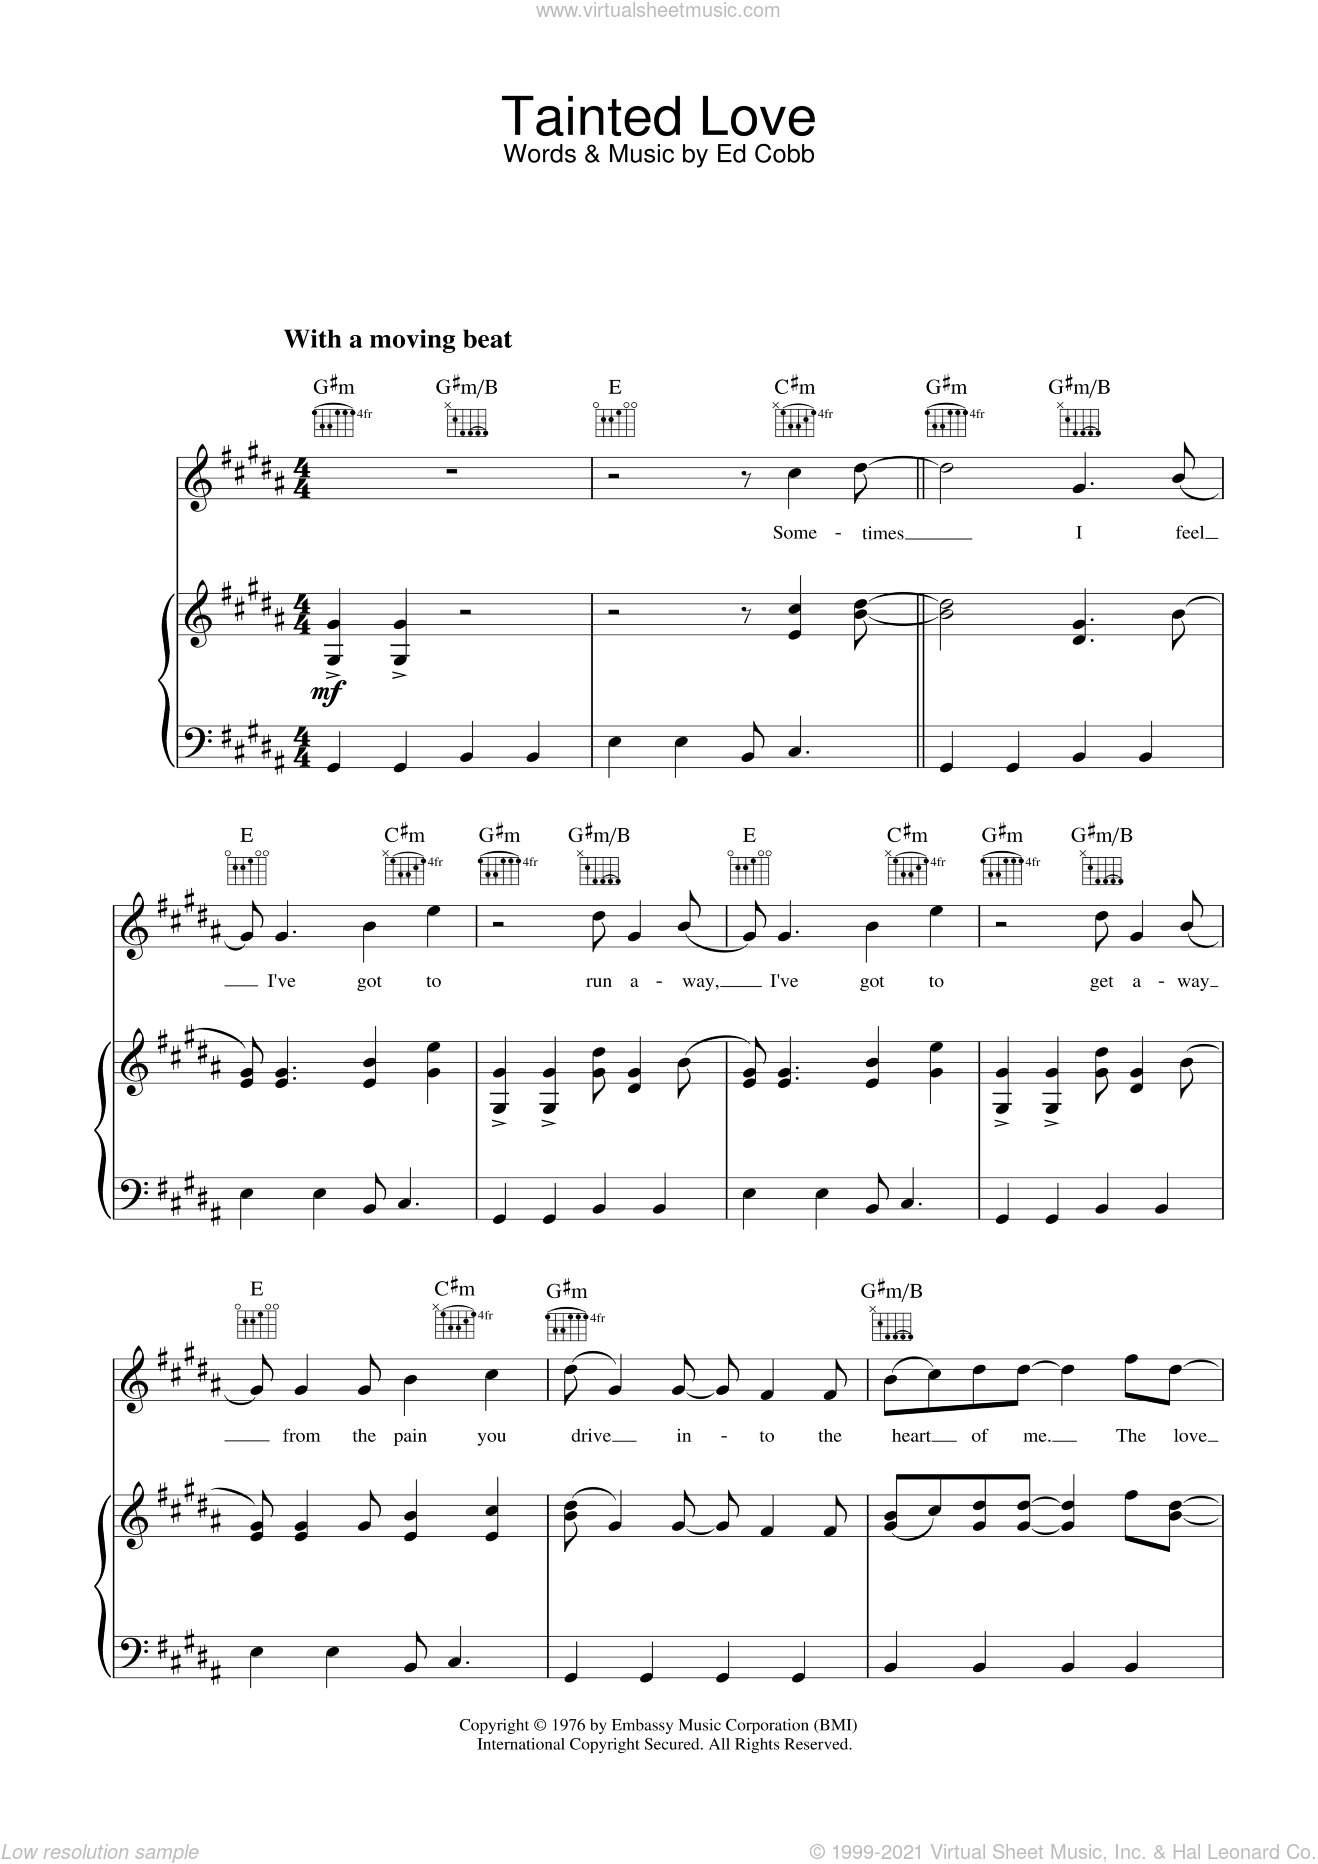 Tainted Love sheet music for voice, piano or guitar by Ed Cobb. Score Image Preview.